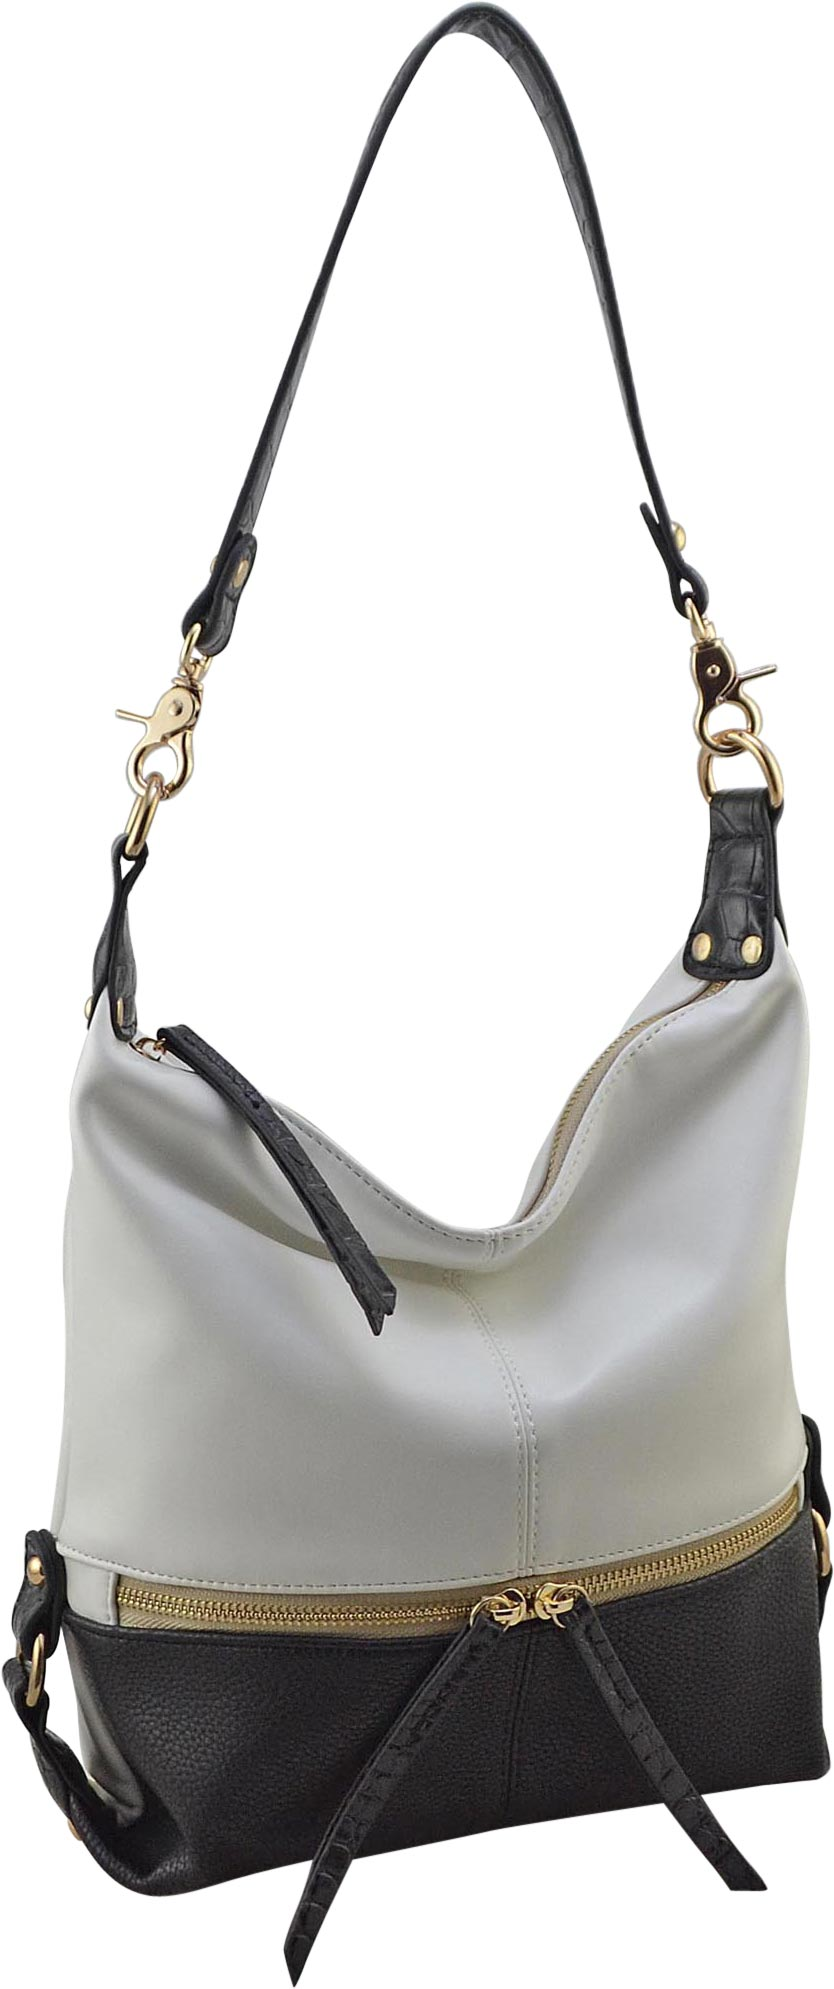 Colorblock Hobo | Small (CLEARANCE) - Susie O's Handbags